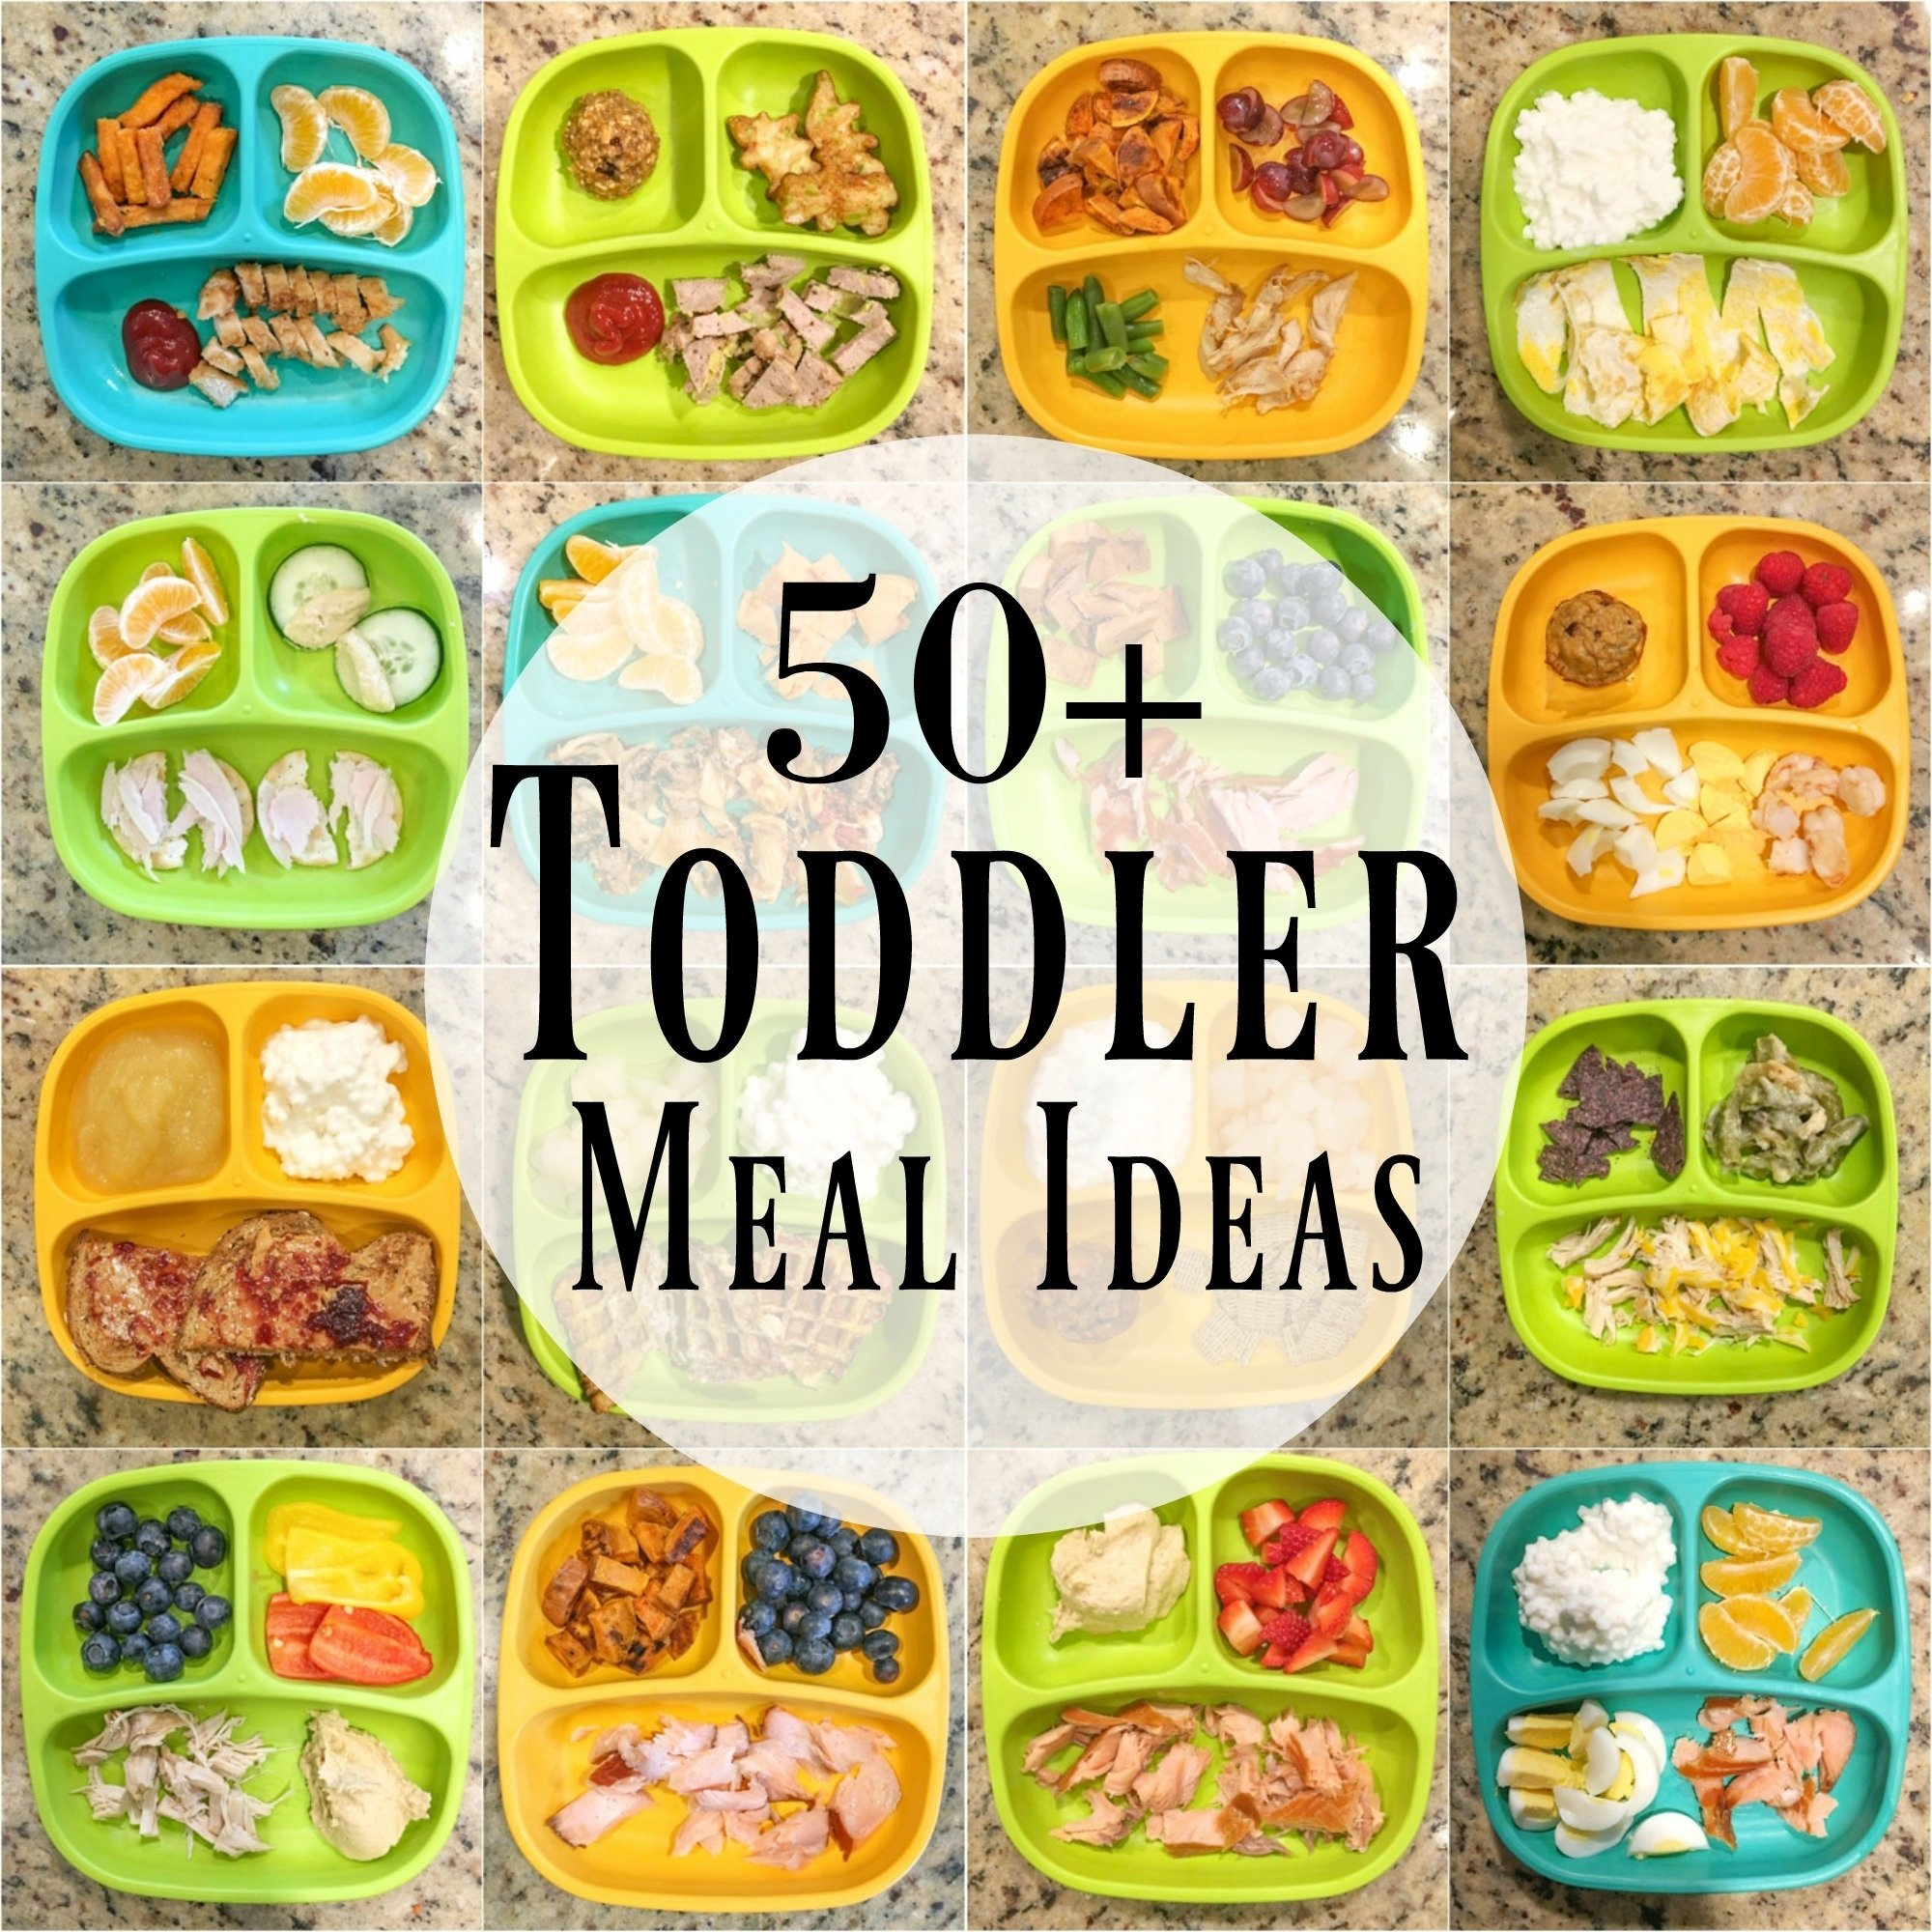 10 Perfect Easy Lunch Ideas For Toddlers 50 healthy toddler meal ideas the lean green bean 4 2021